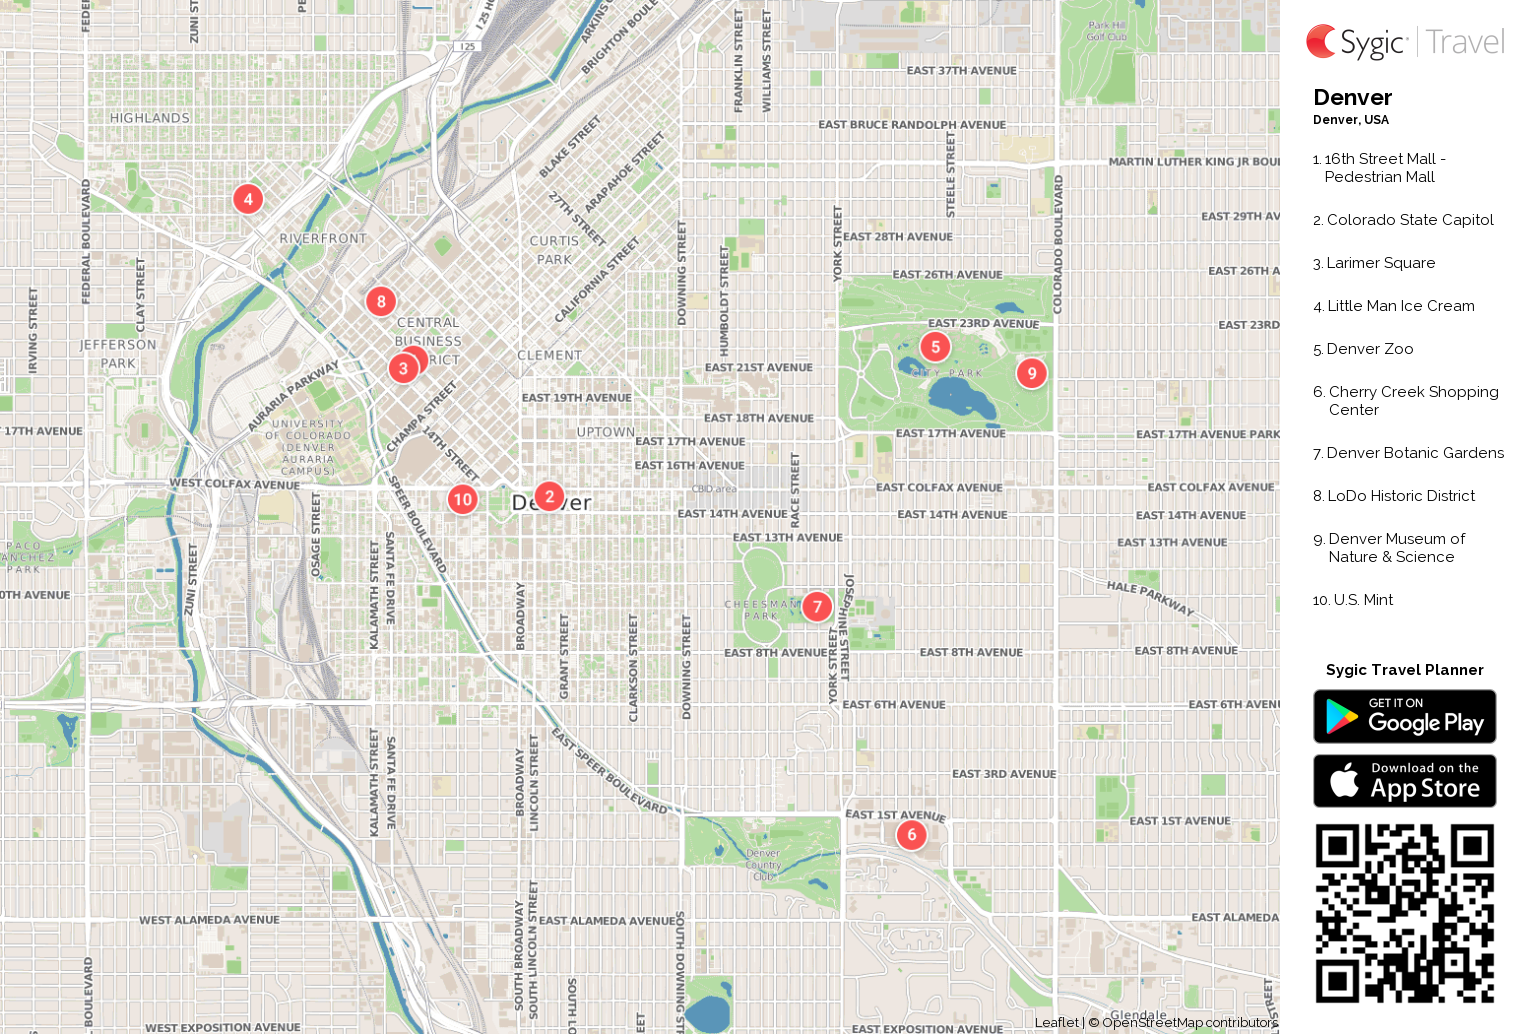 denver printable tourist map  sygic travel - denver printable tourist map